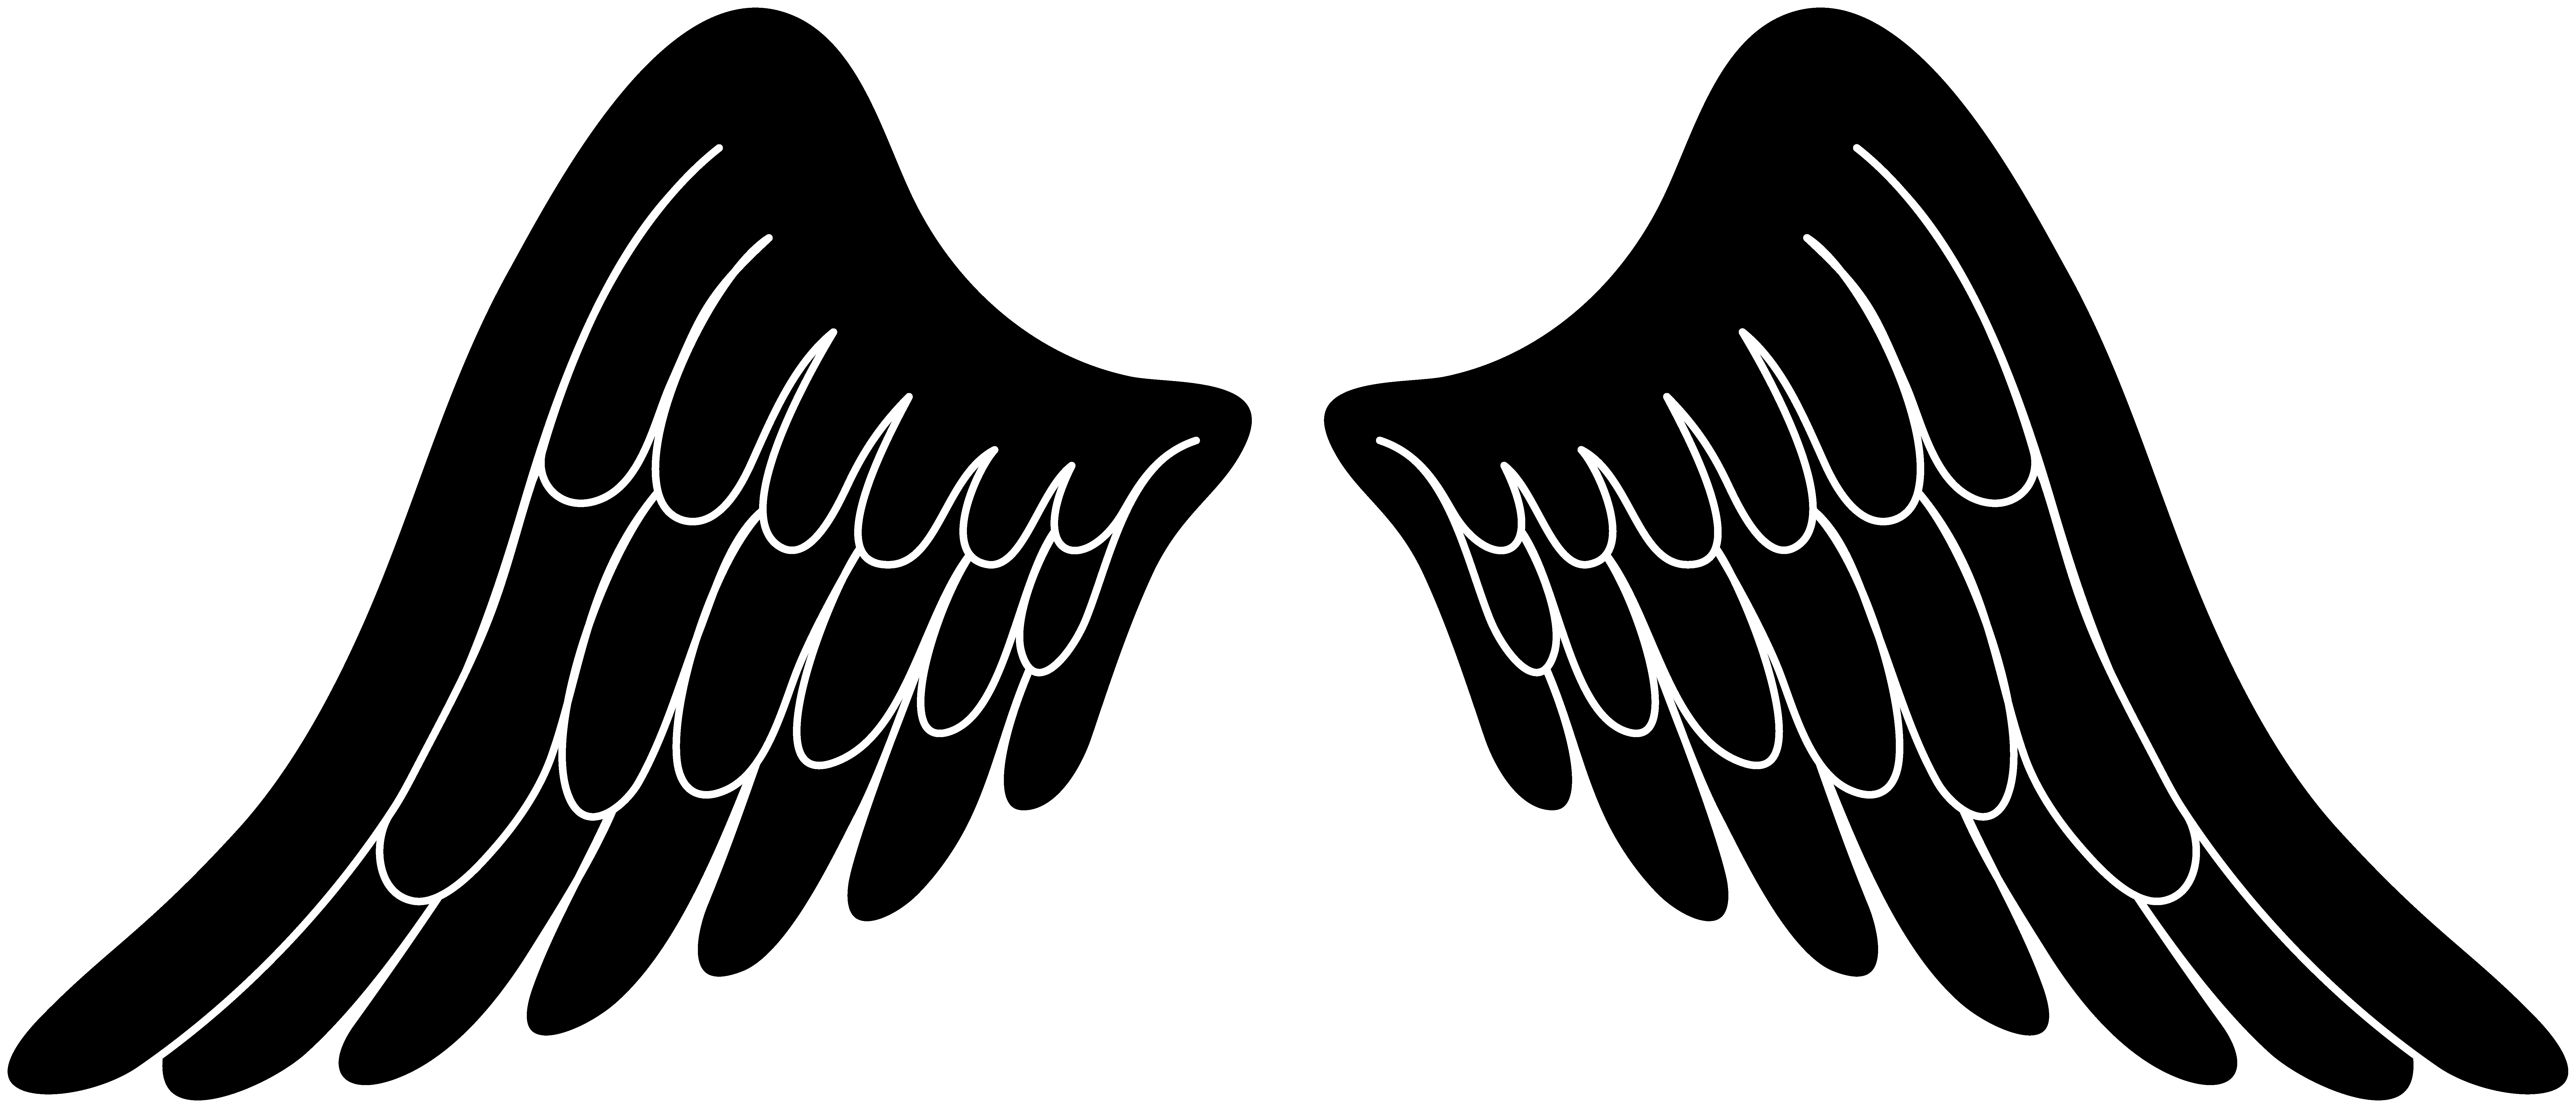 Words clipart angel. Wing clip art free